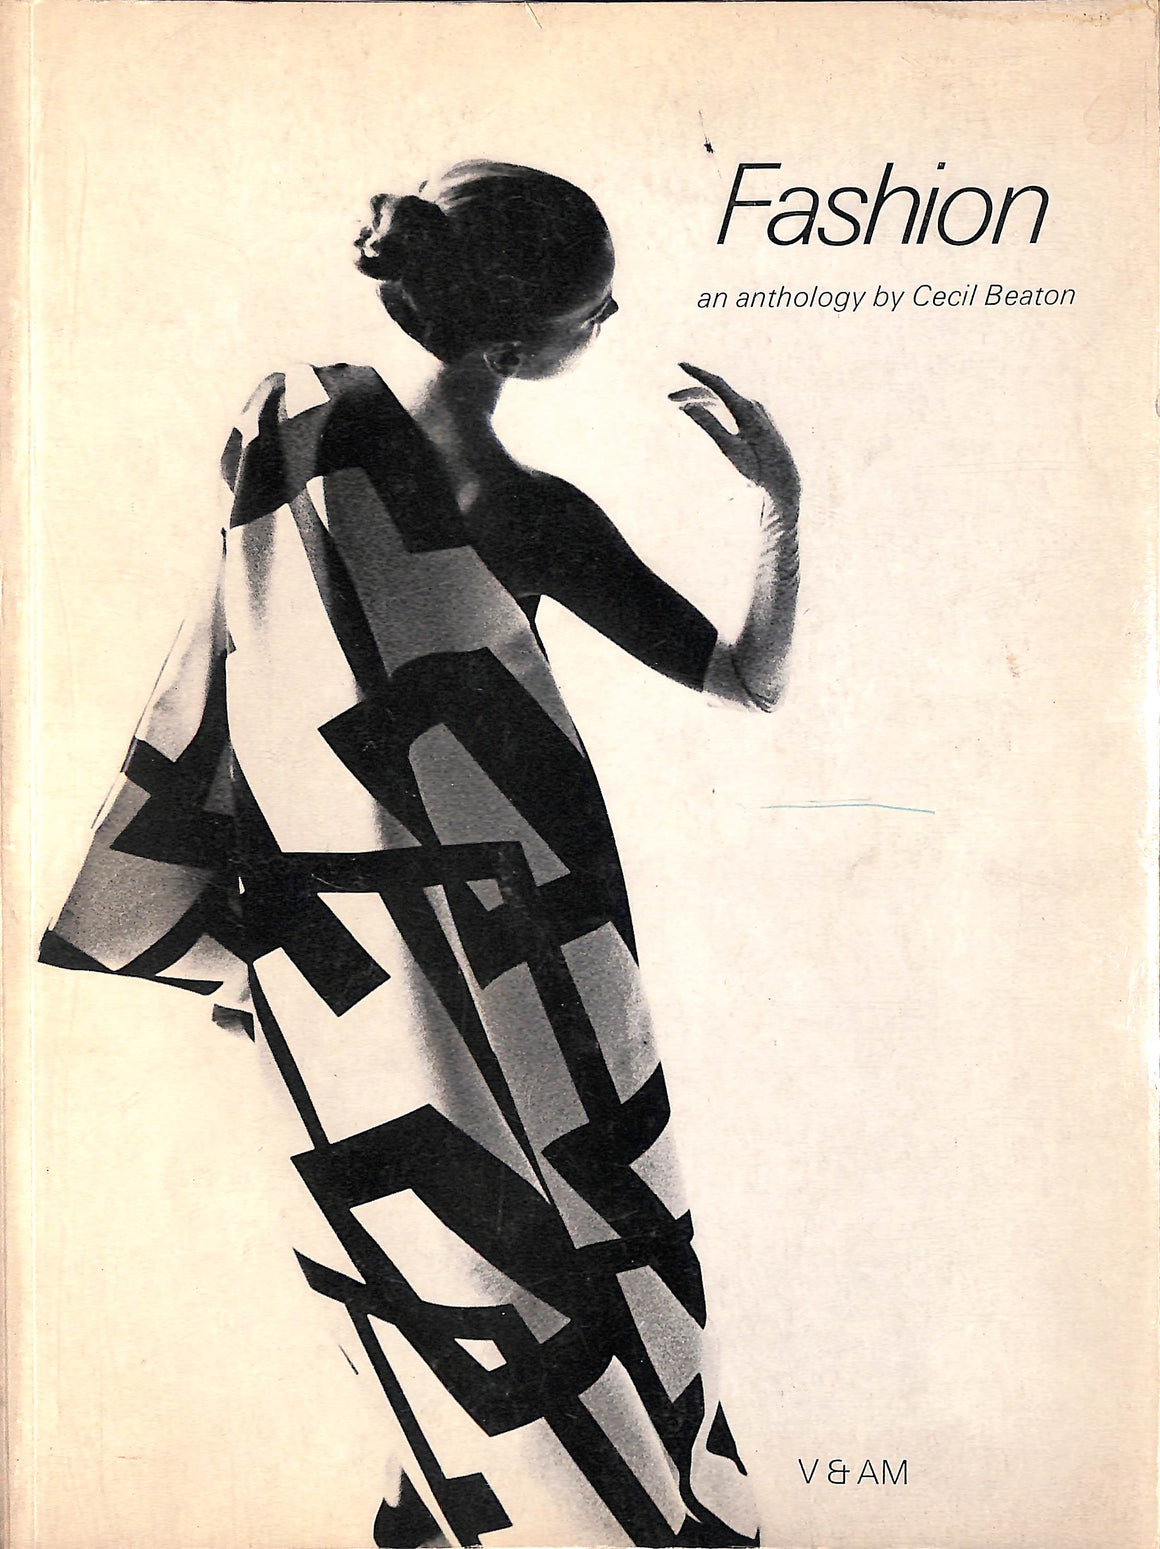 Fashion an Anthology by Cecil Beaton